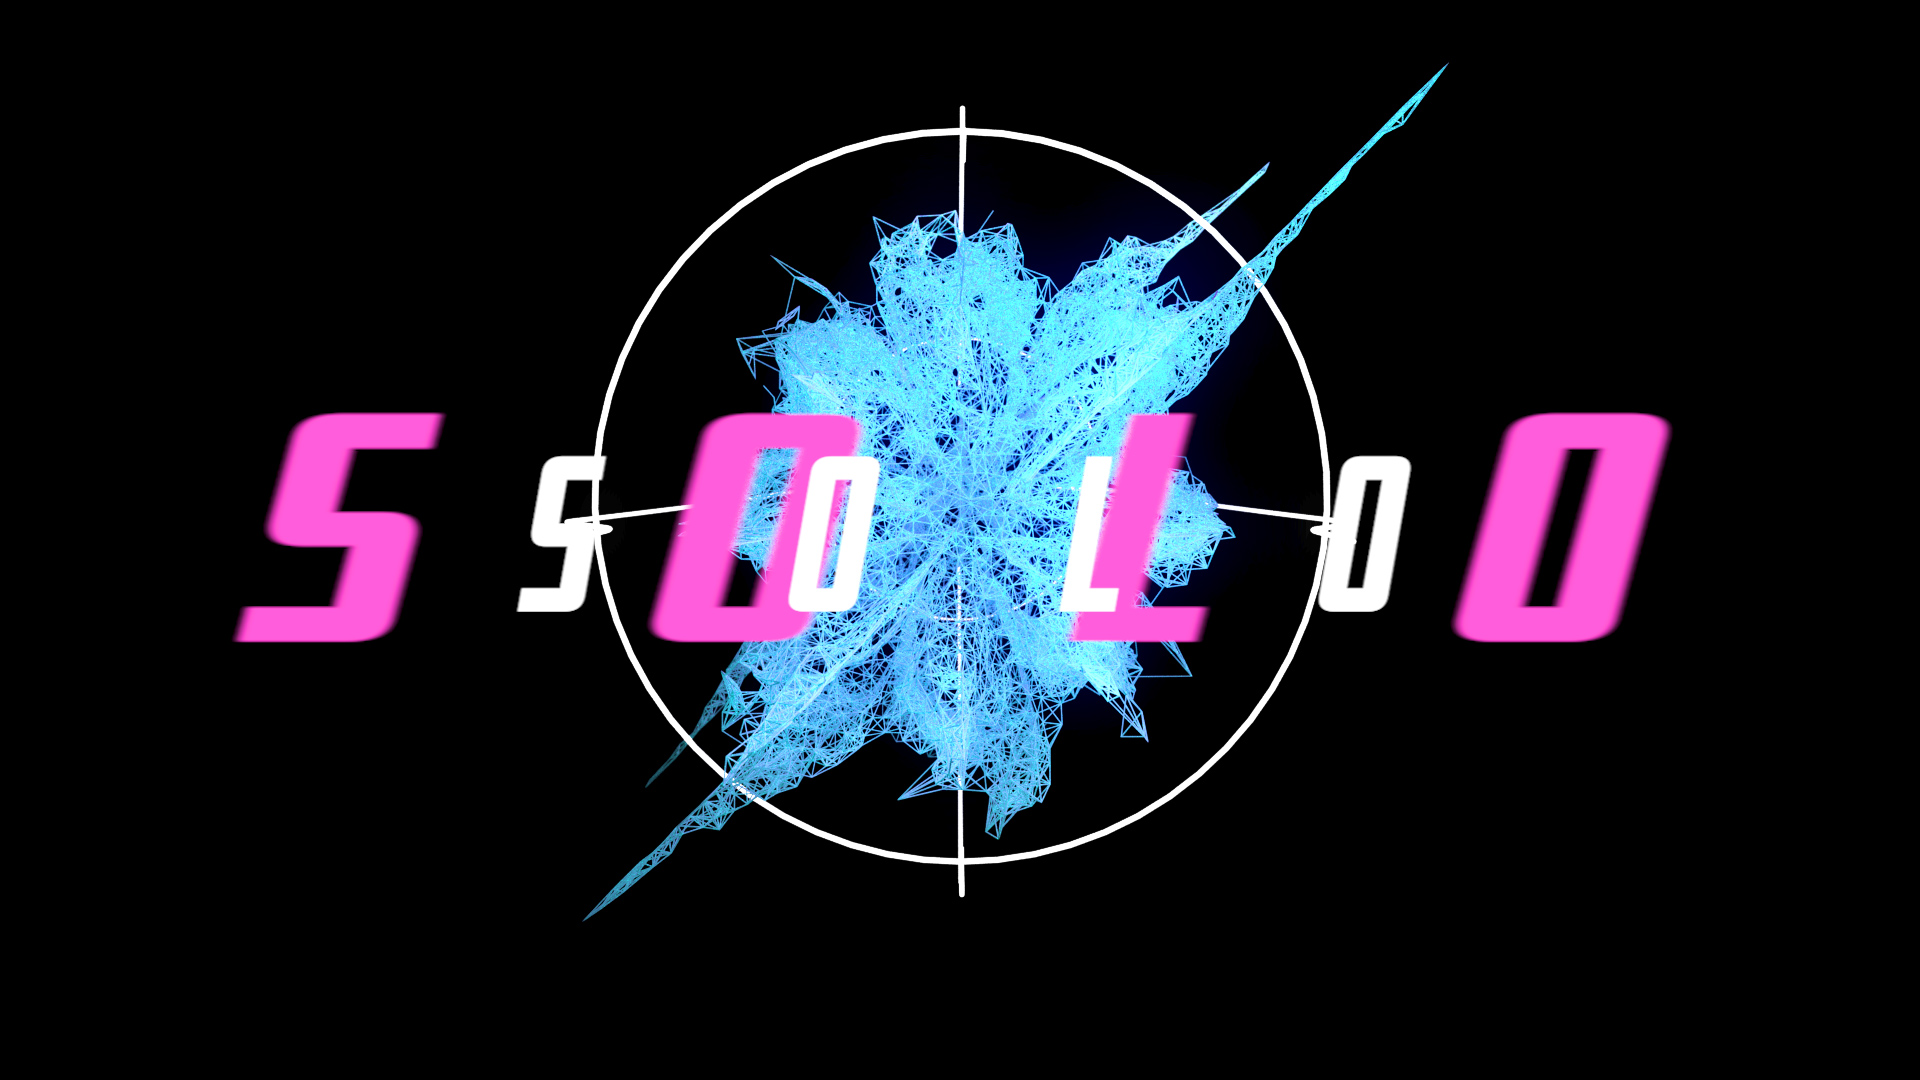 Solo ft